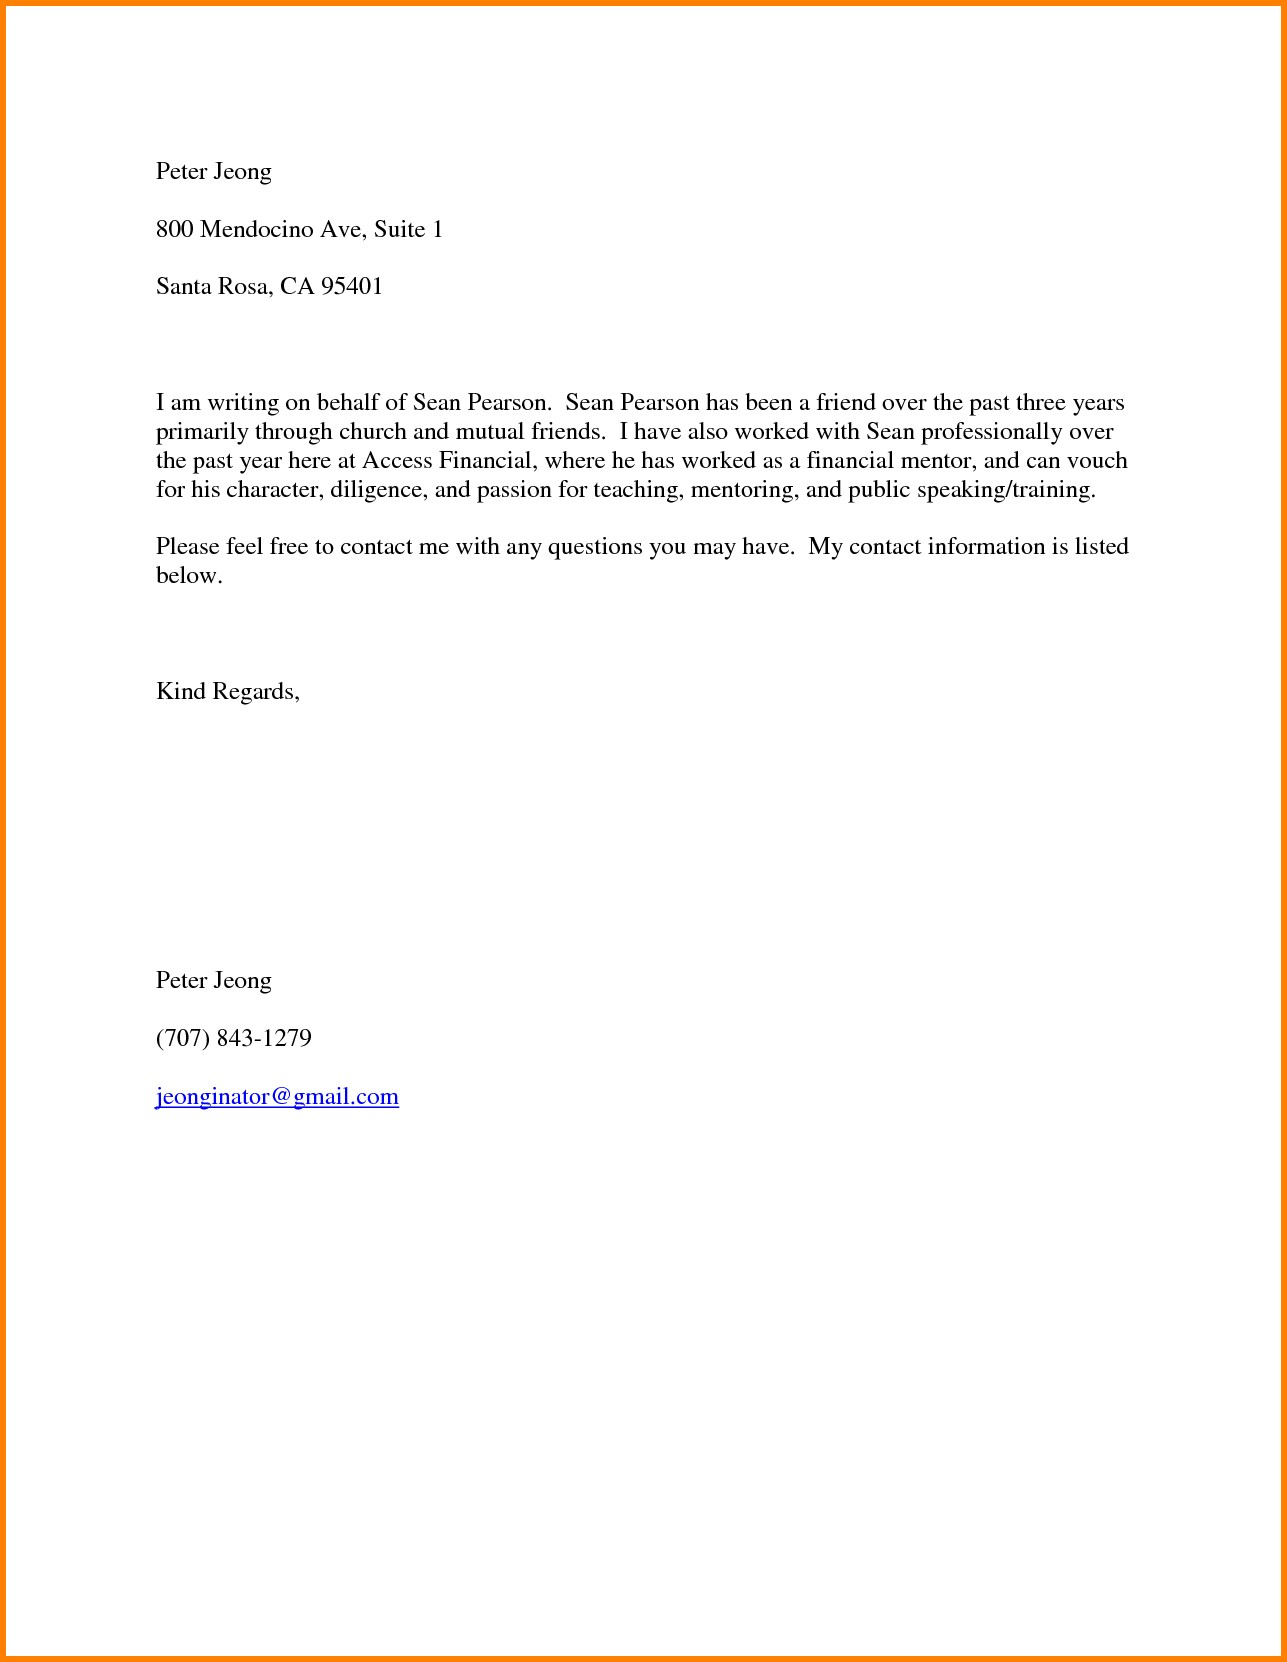 Reference Letter Template for A Friend - Sample format Certificate Good Moral Elegant Reference Letter